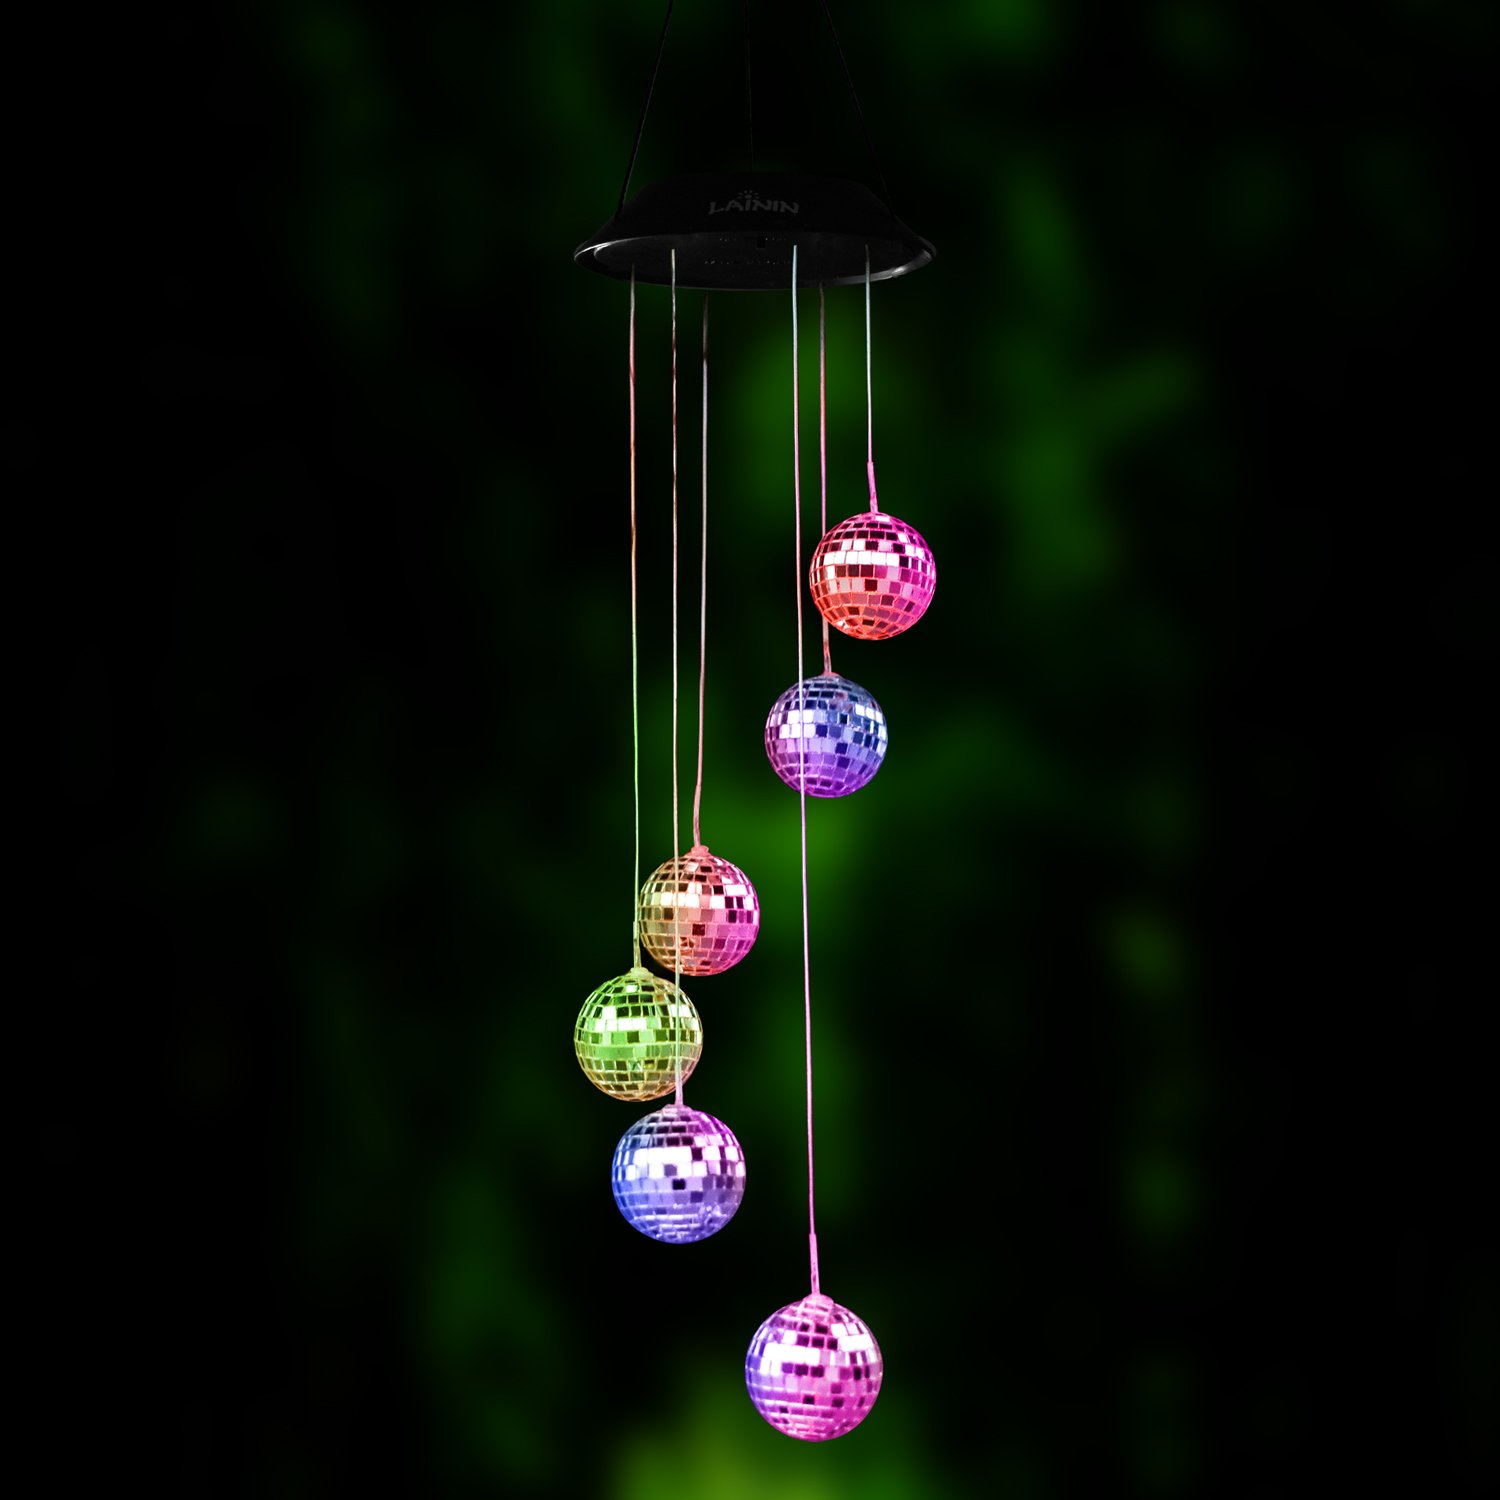 Novadeal Color Changing Solar Wind Spinner, Disco Ball Shape Solar Wind Chime Night Light For Home Outdoor Garden Ligting Decor